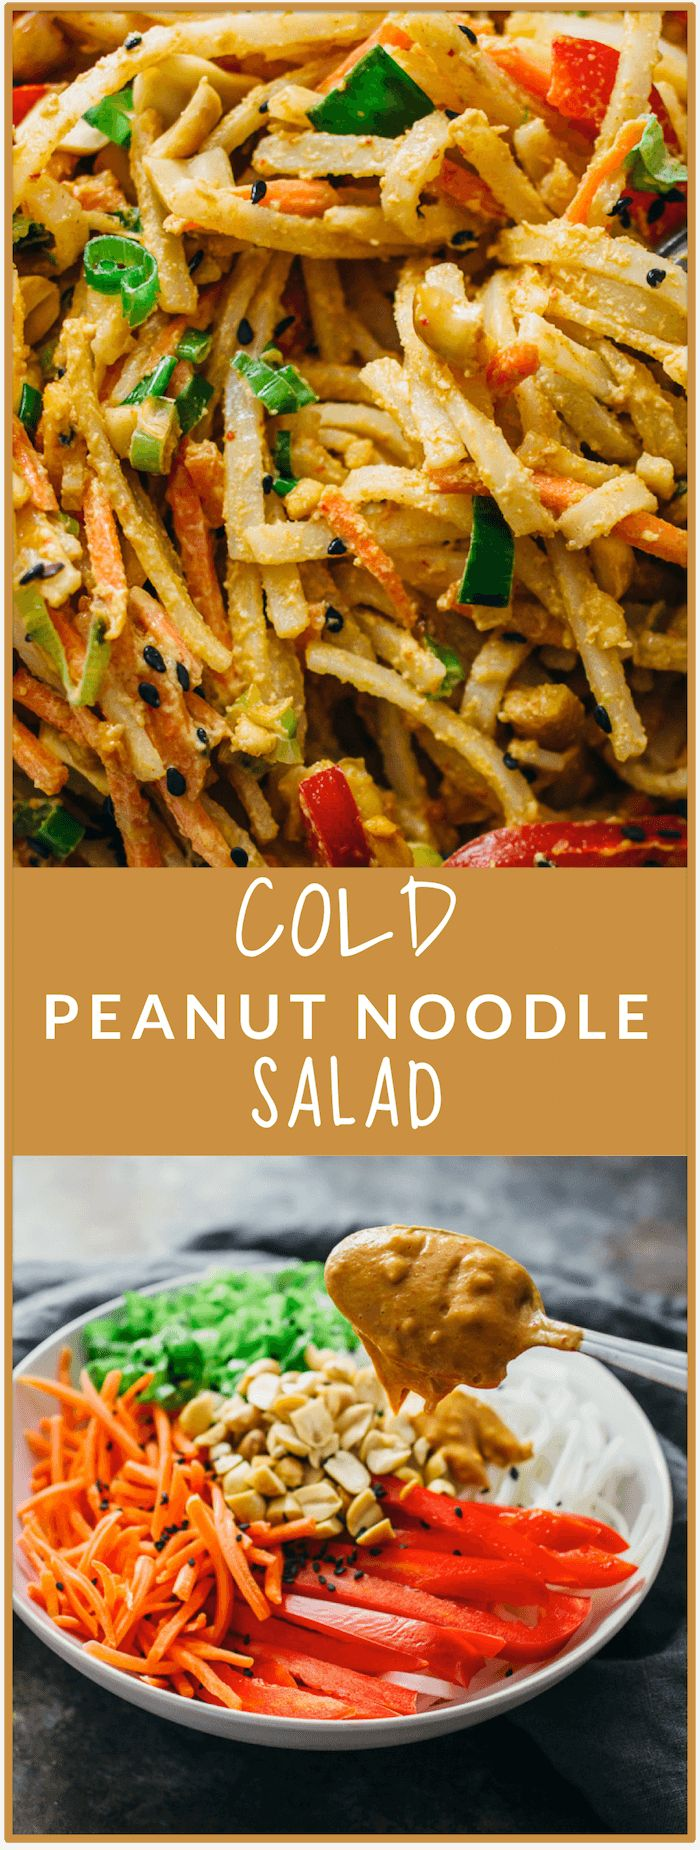 Cold peanut noodle salad - Cool off on a hot summer day with this COLD peanut noodle salad! This Thai-inspired recipe consists of noodles, healthy vegetables, a tasty and spicy peanut dressing, and is topped with sesame seeds. This is an easy vegan dish that you can whip up for weeknight dinners during summer. - savorytooth.com